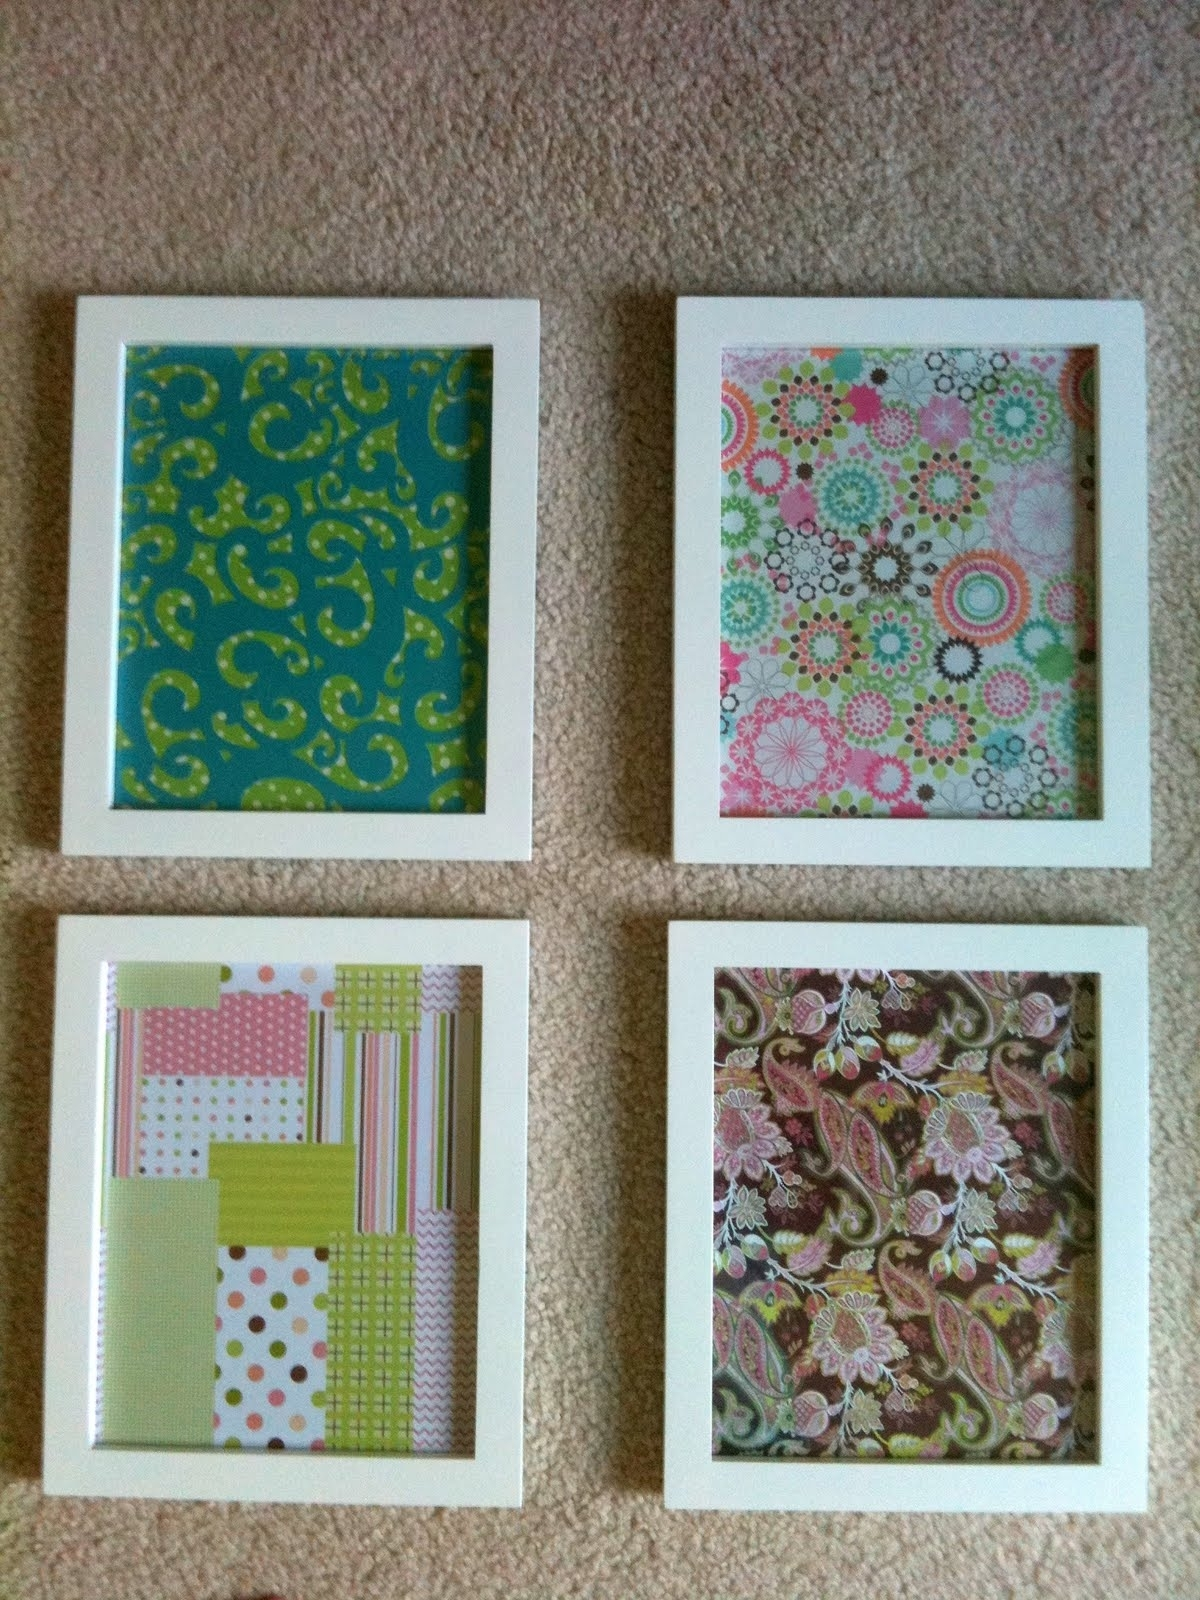 Diy Nursery Wall Decor Ideas With Beautiful Pa #84 – Green Way Parc Within Trendy Fabric Panels For Wall Art (View 15 of 15)